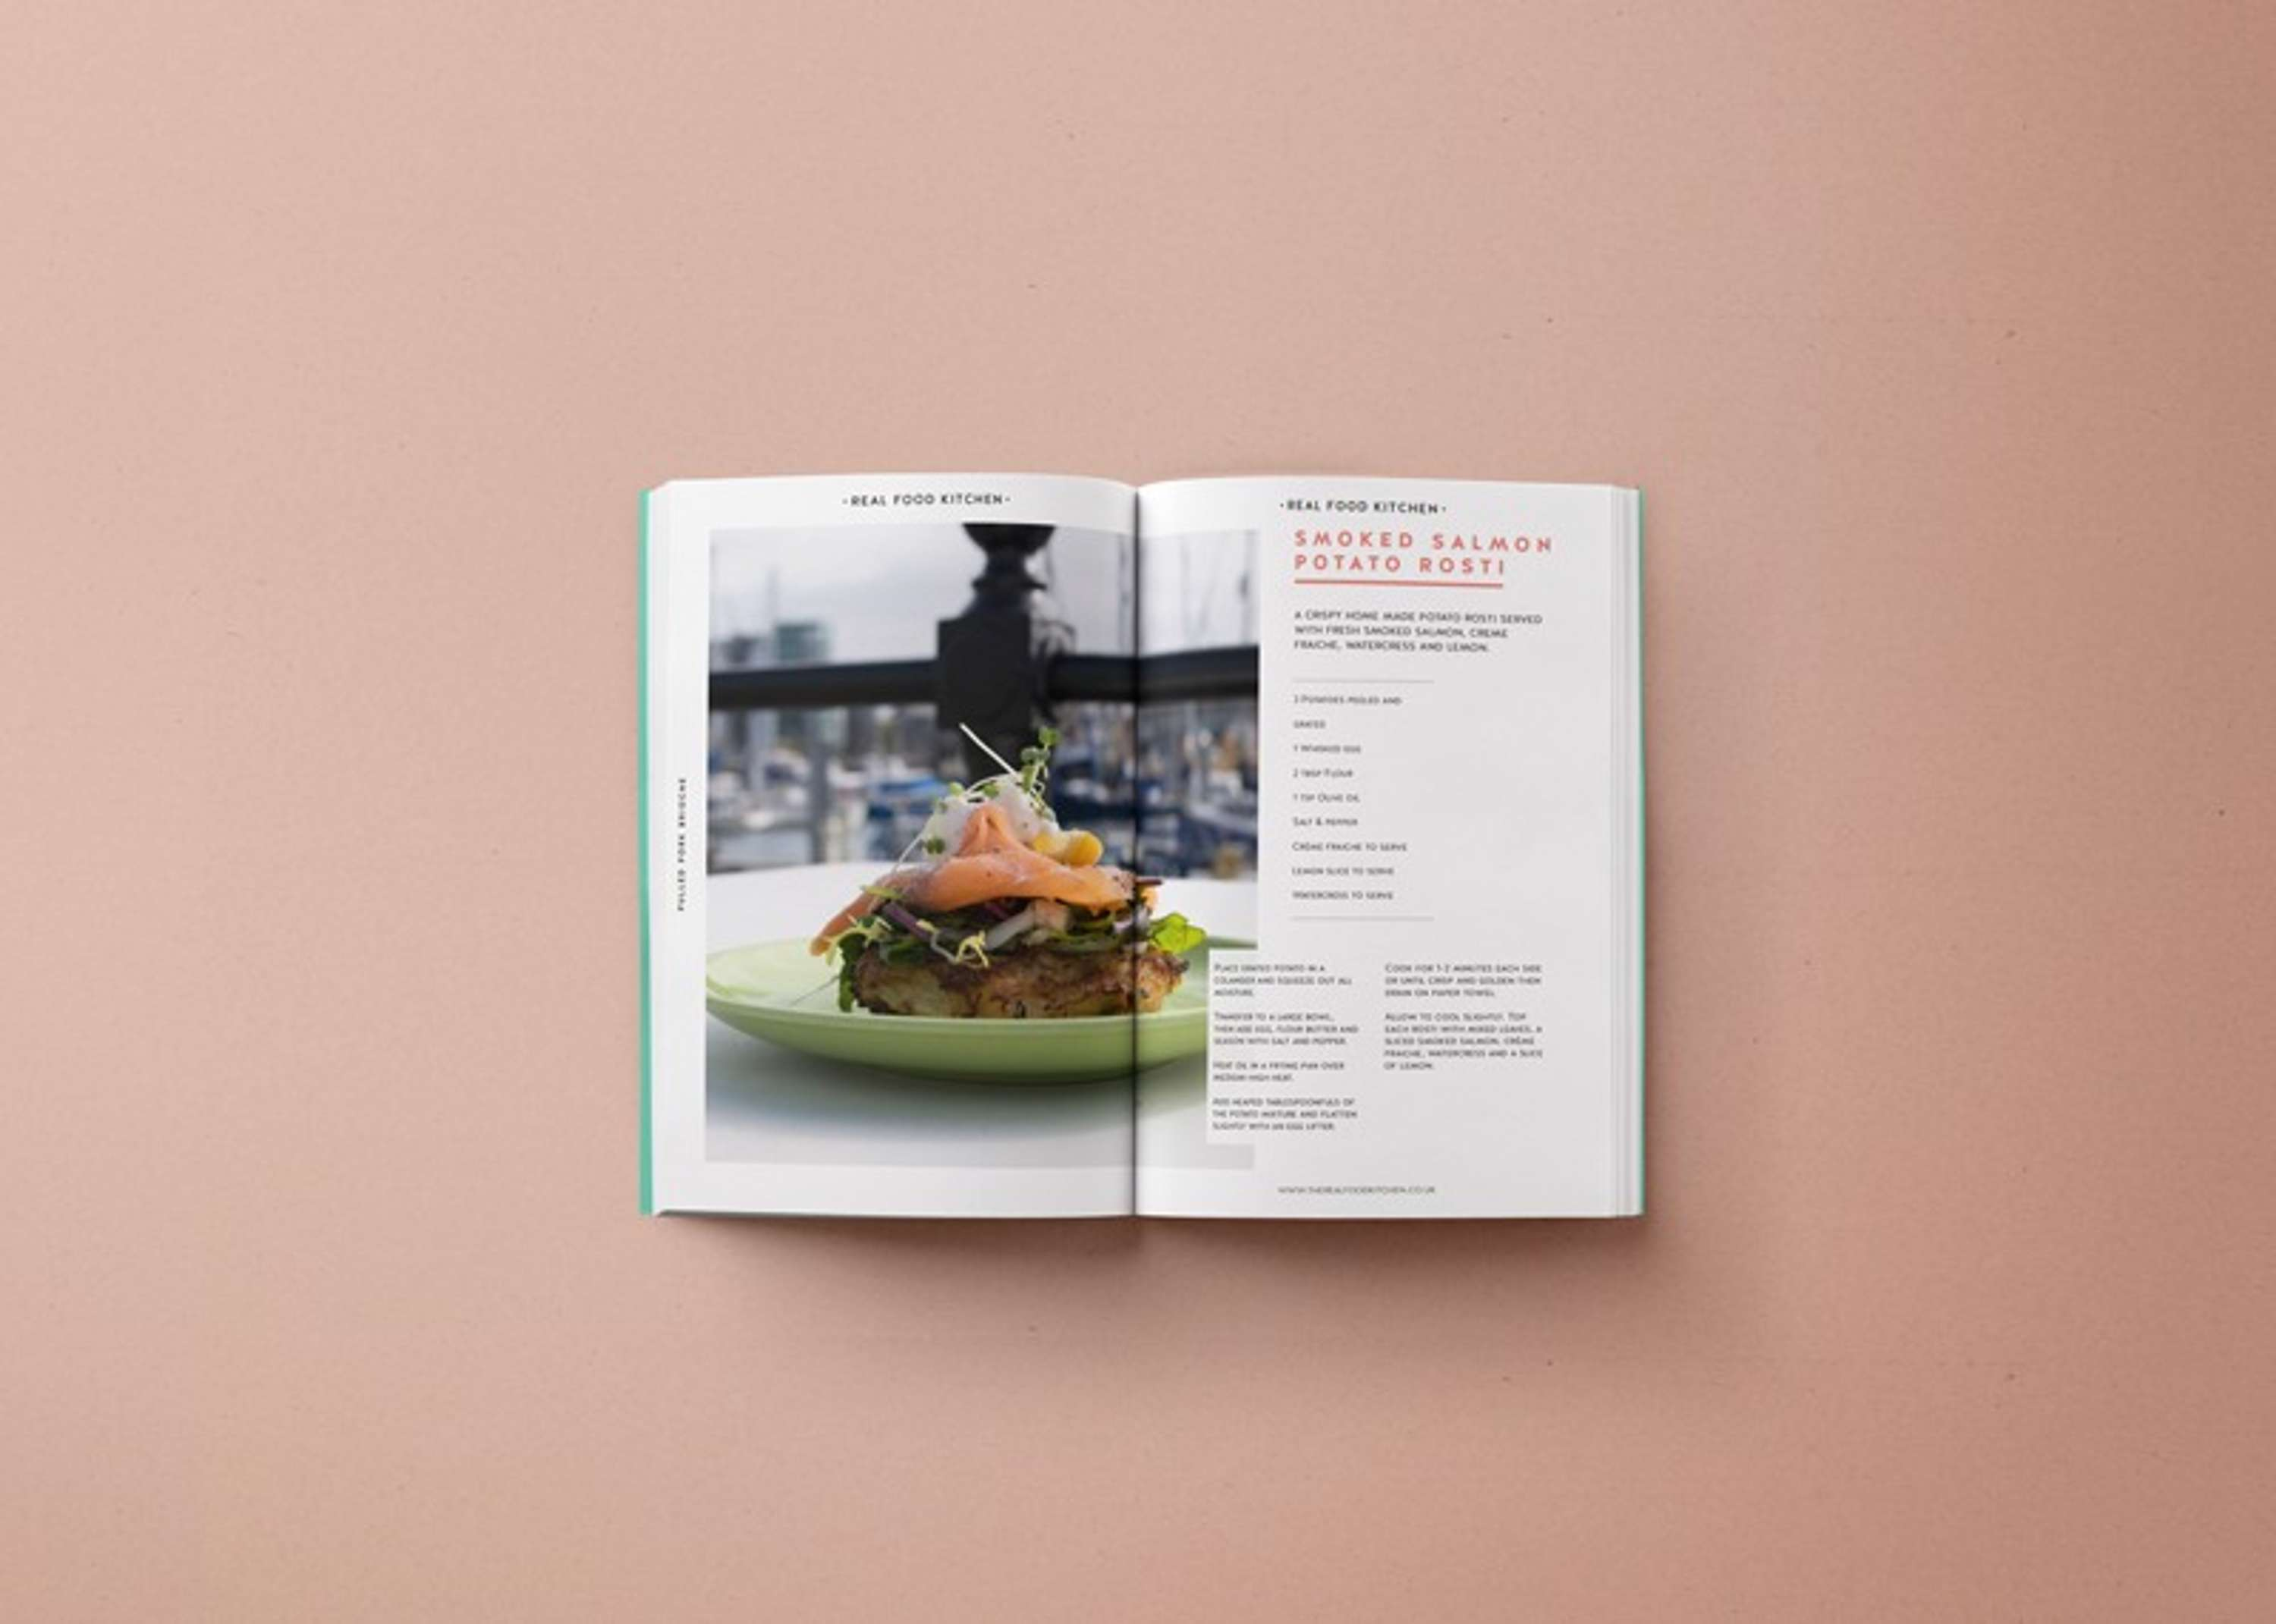 Real food kitchen cook book the dots the real food kitchen produces locally sourced cuisine and i wanted to showcase some of their most popular dishes in a cook book forumfinder Images